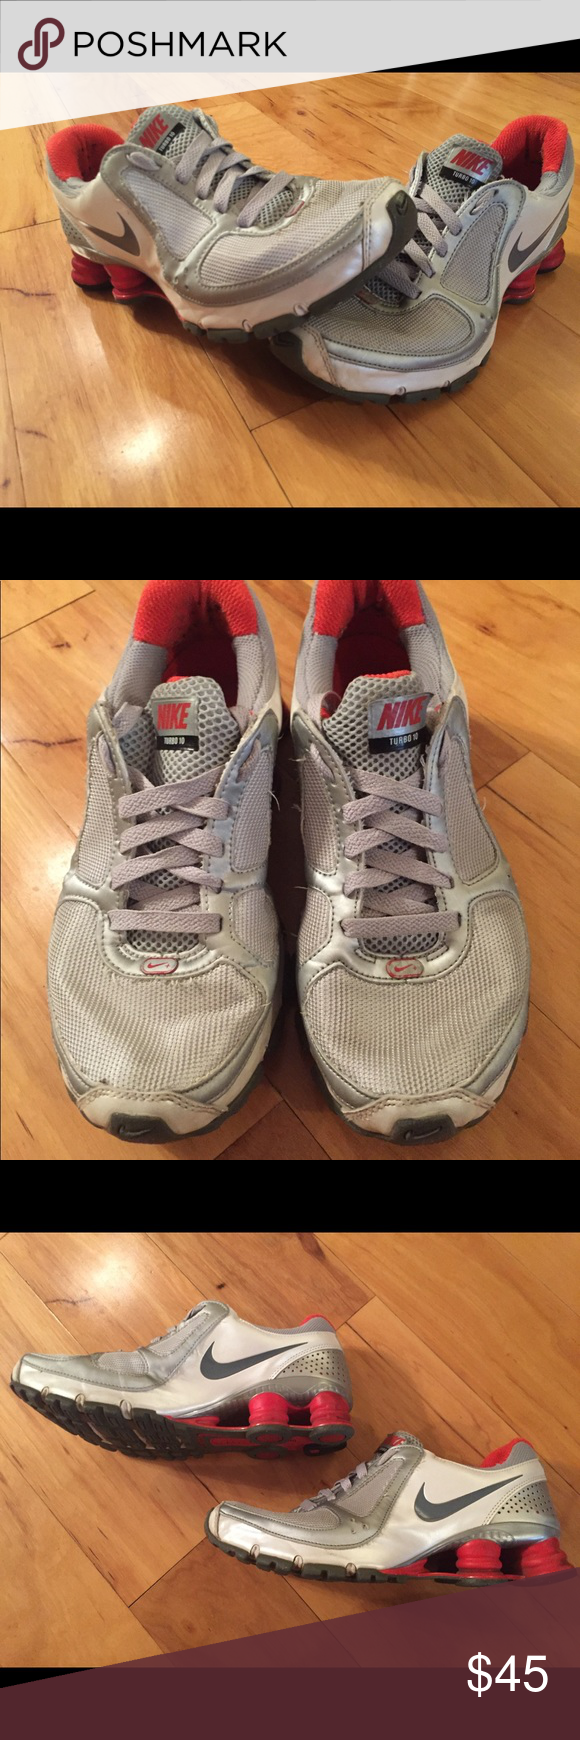 ee23472633ffb5 ... Womens Nike 605a16c Shox Turbo 10 Size 7.5 Silver Red Nike 385752-002  Excellent condition  Womens Nike 83026a7 Shox Turbo 10 Running Shoes ...